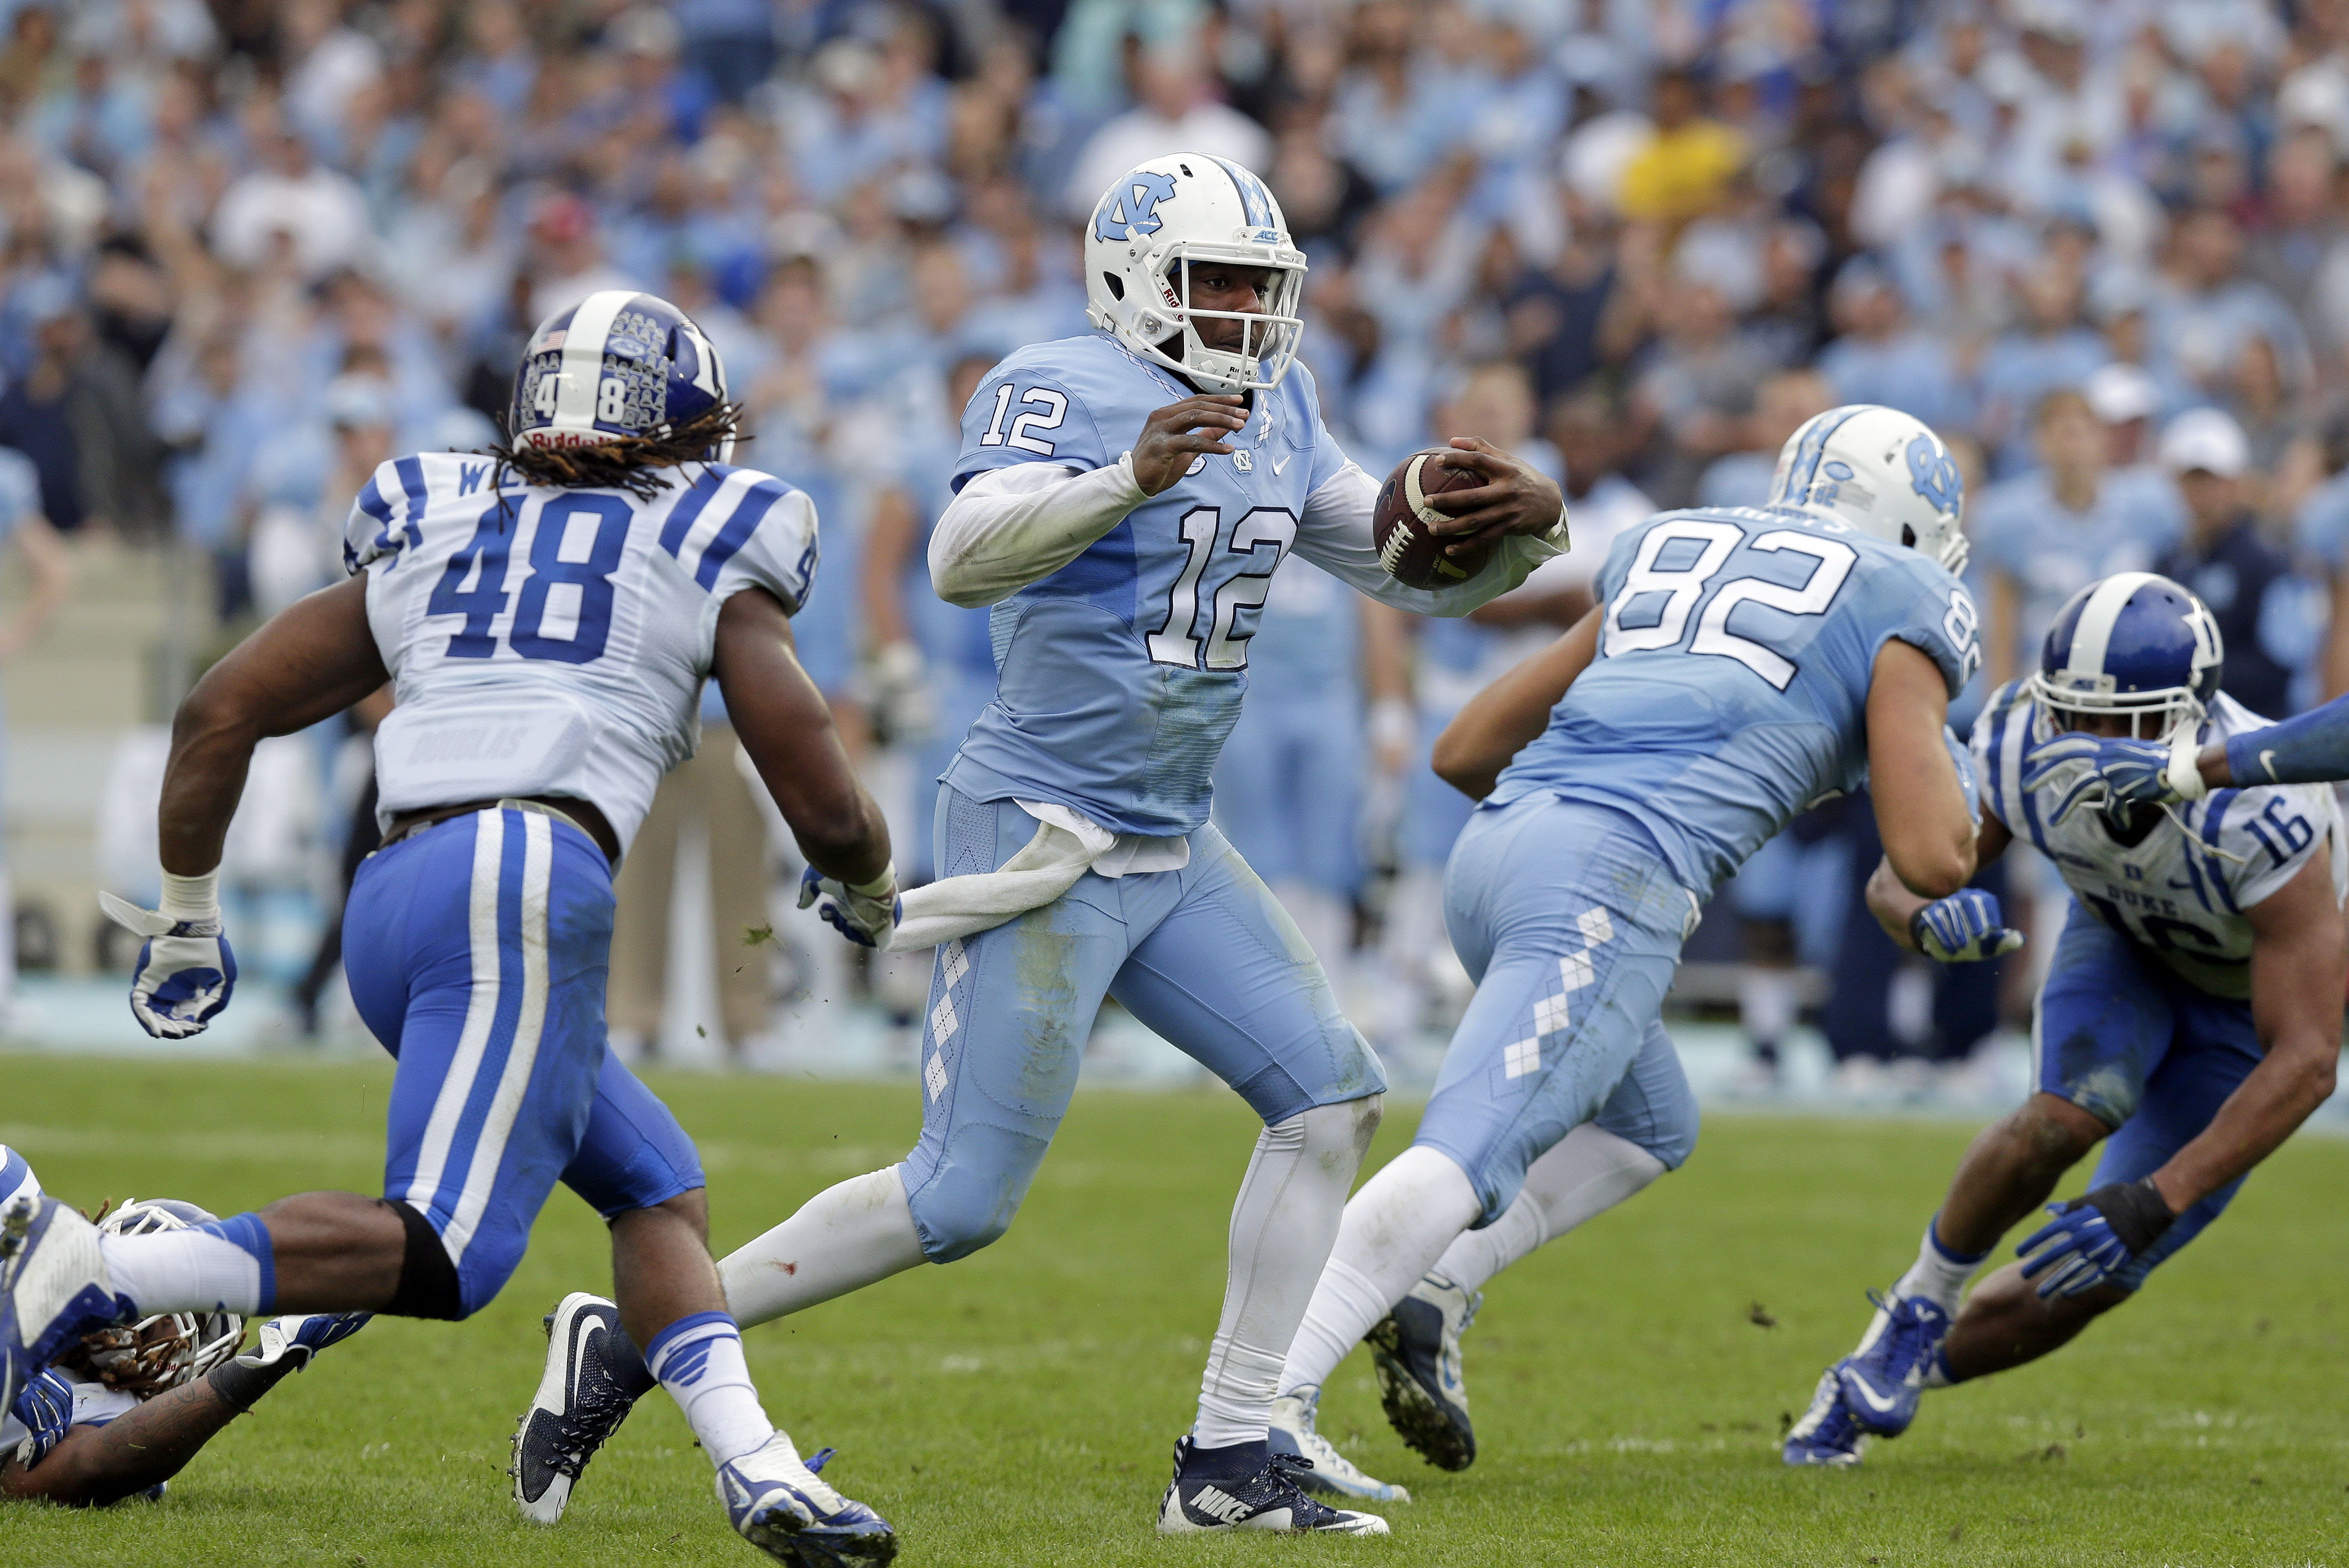 North Carolina quarterback Marquise Williams (12)  finds some running room as Duke's Deion Williams (48) looks for the tackle during the first half of an NCAA college football game in Chapel Hill, N.C., Saturday, Nov. 7, 2015. (AP Photo/Gerry Broome)